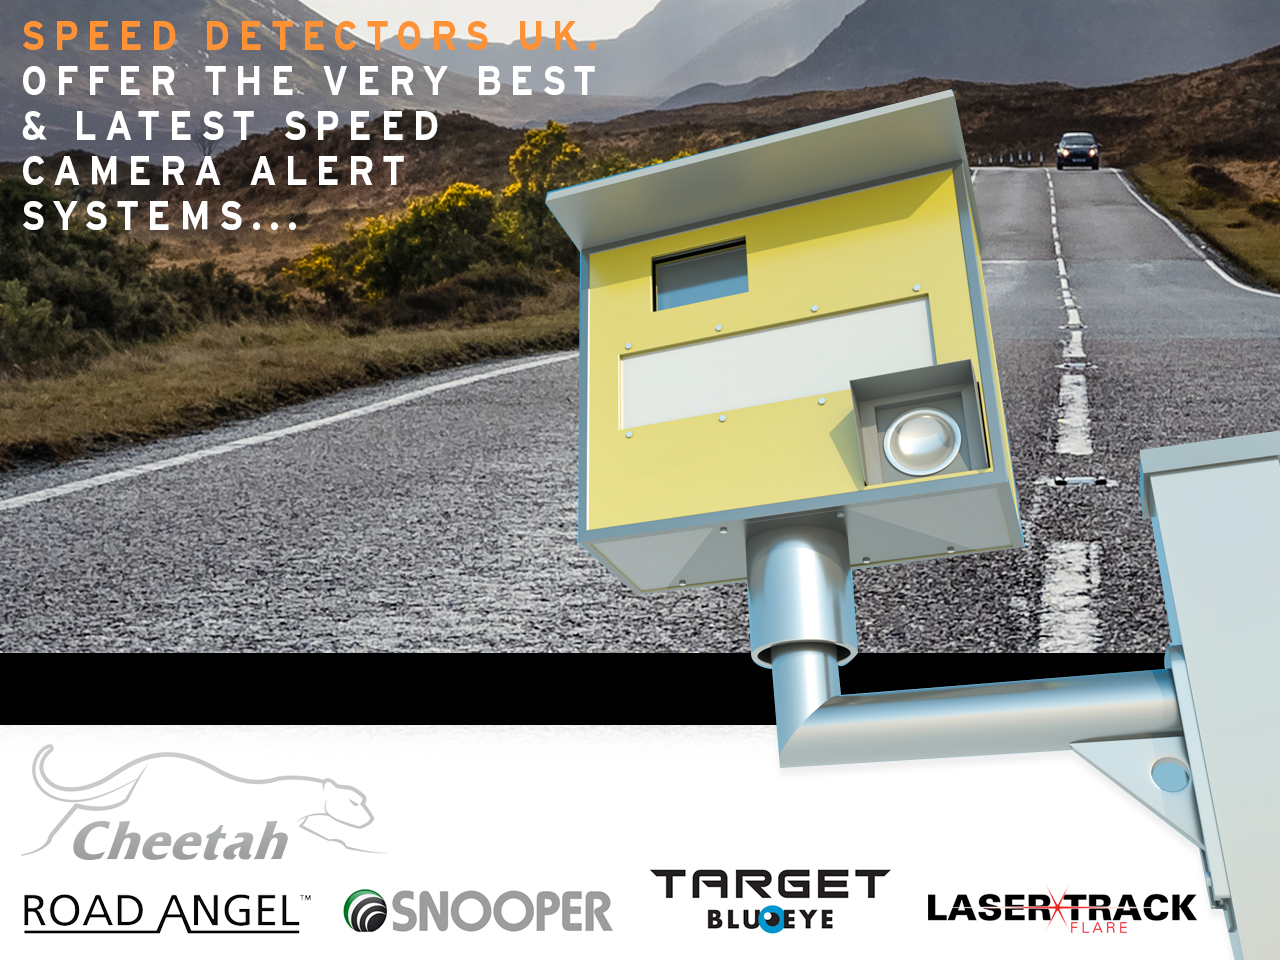 Speed Detectors - Road Angel - Snooper - Cheetah GPS - Target - Target Laser Track Flare - Target Blu Eye